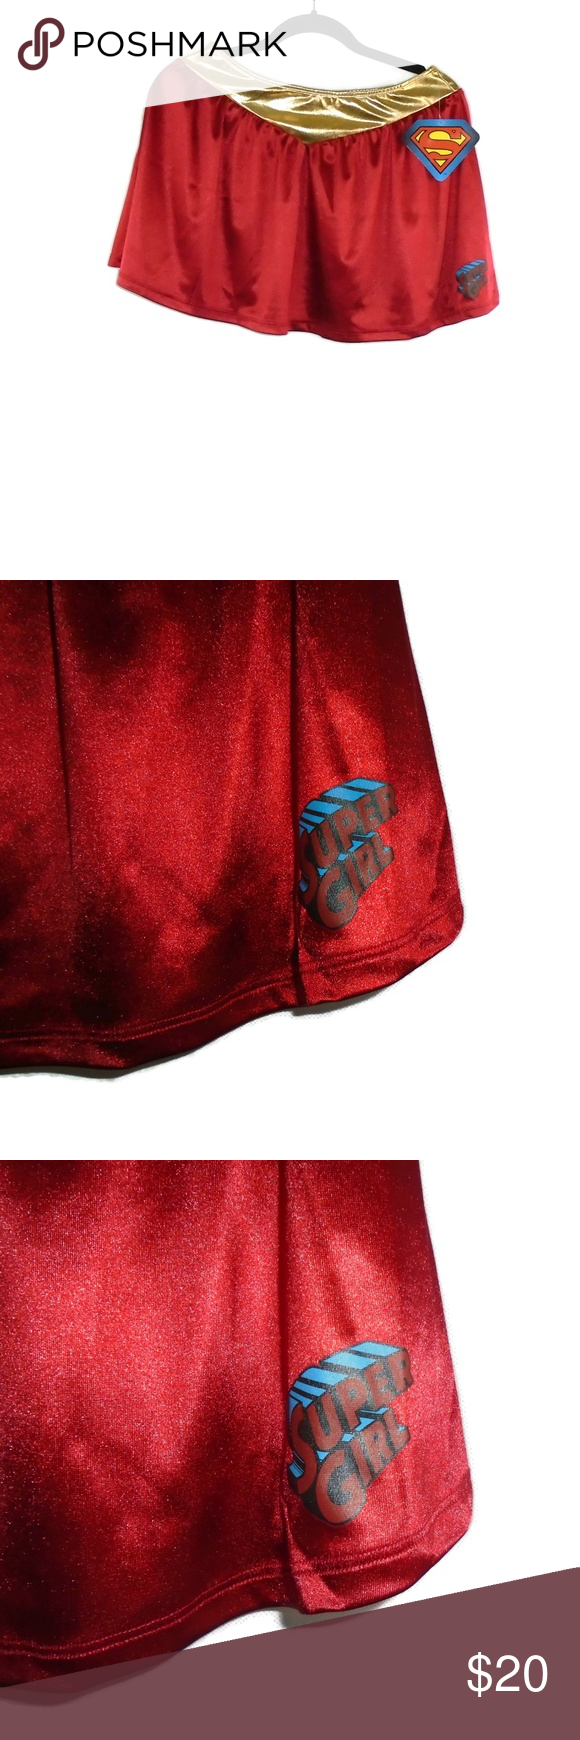 Supergirl Mini Skirt NWT DC Comics Large Red Gold DC Comics Supergirl Mini Skirt... -  Supergirl Mi